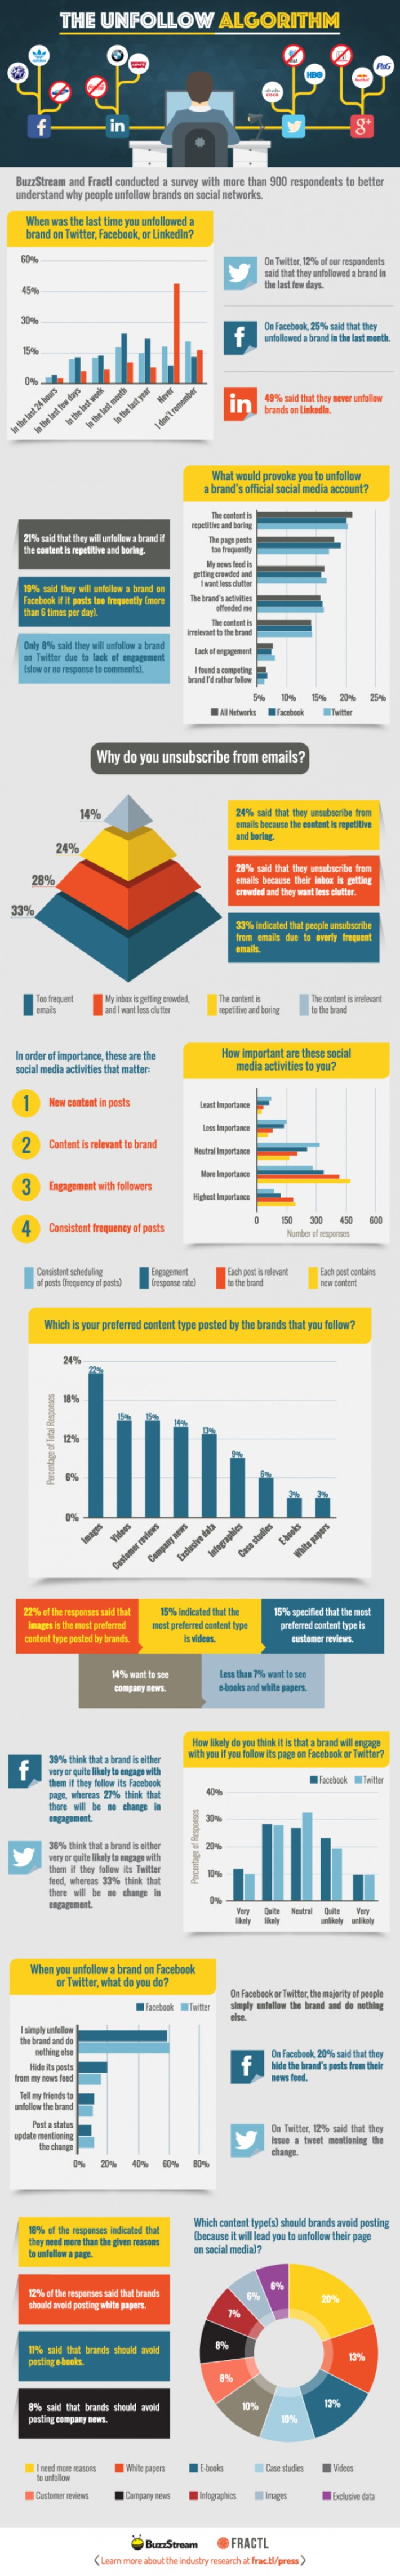 Why do people unfollow brands on Social Media? [Infographic] | Consumption Junction | Scoop.it